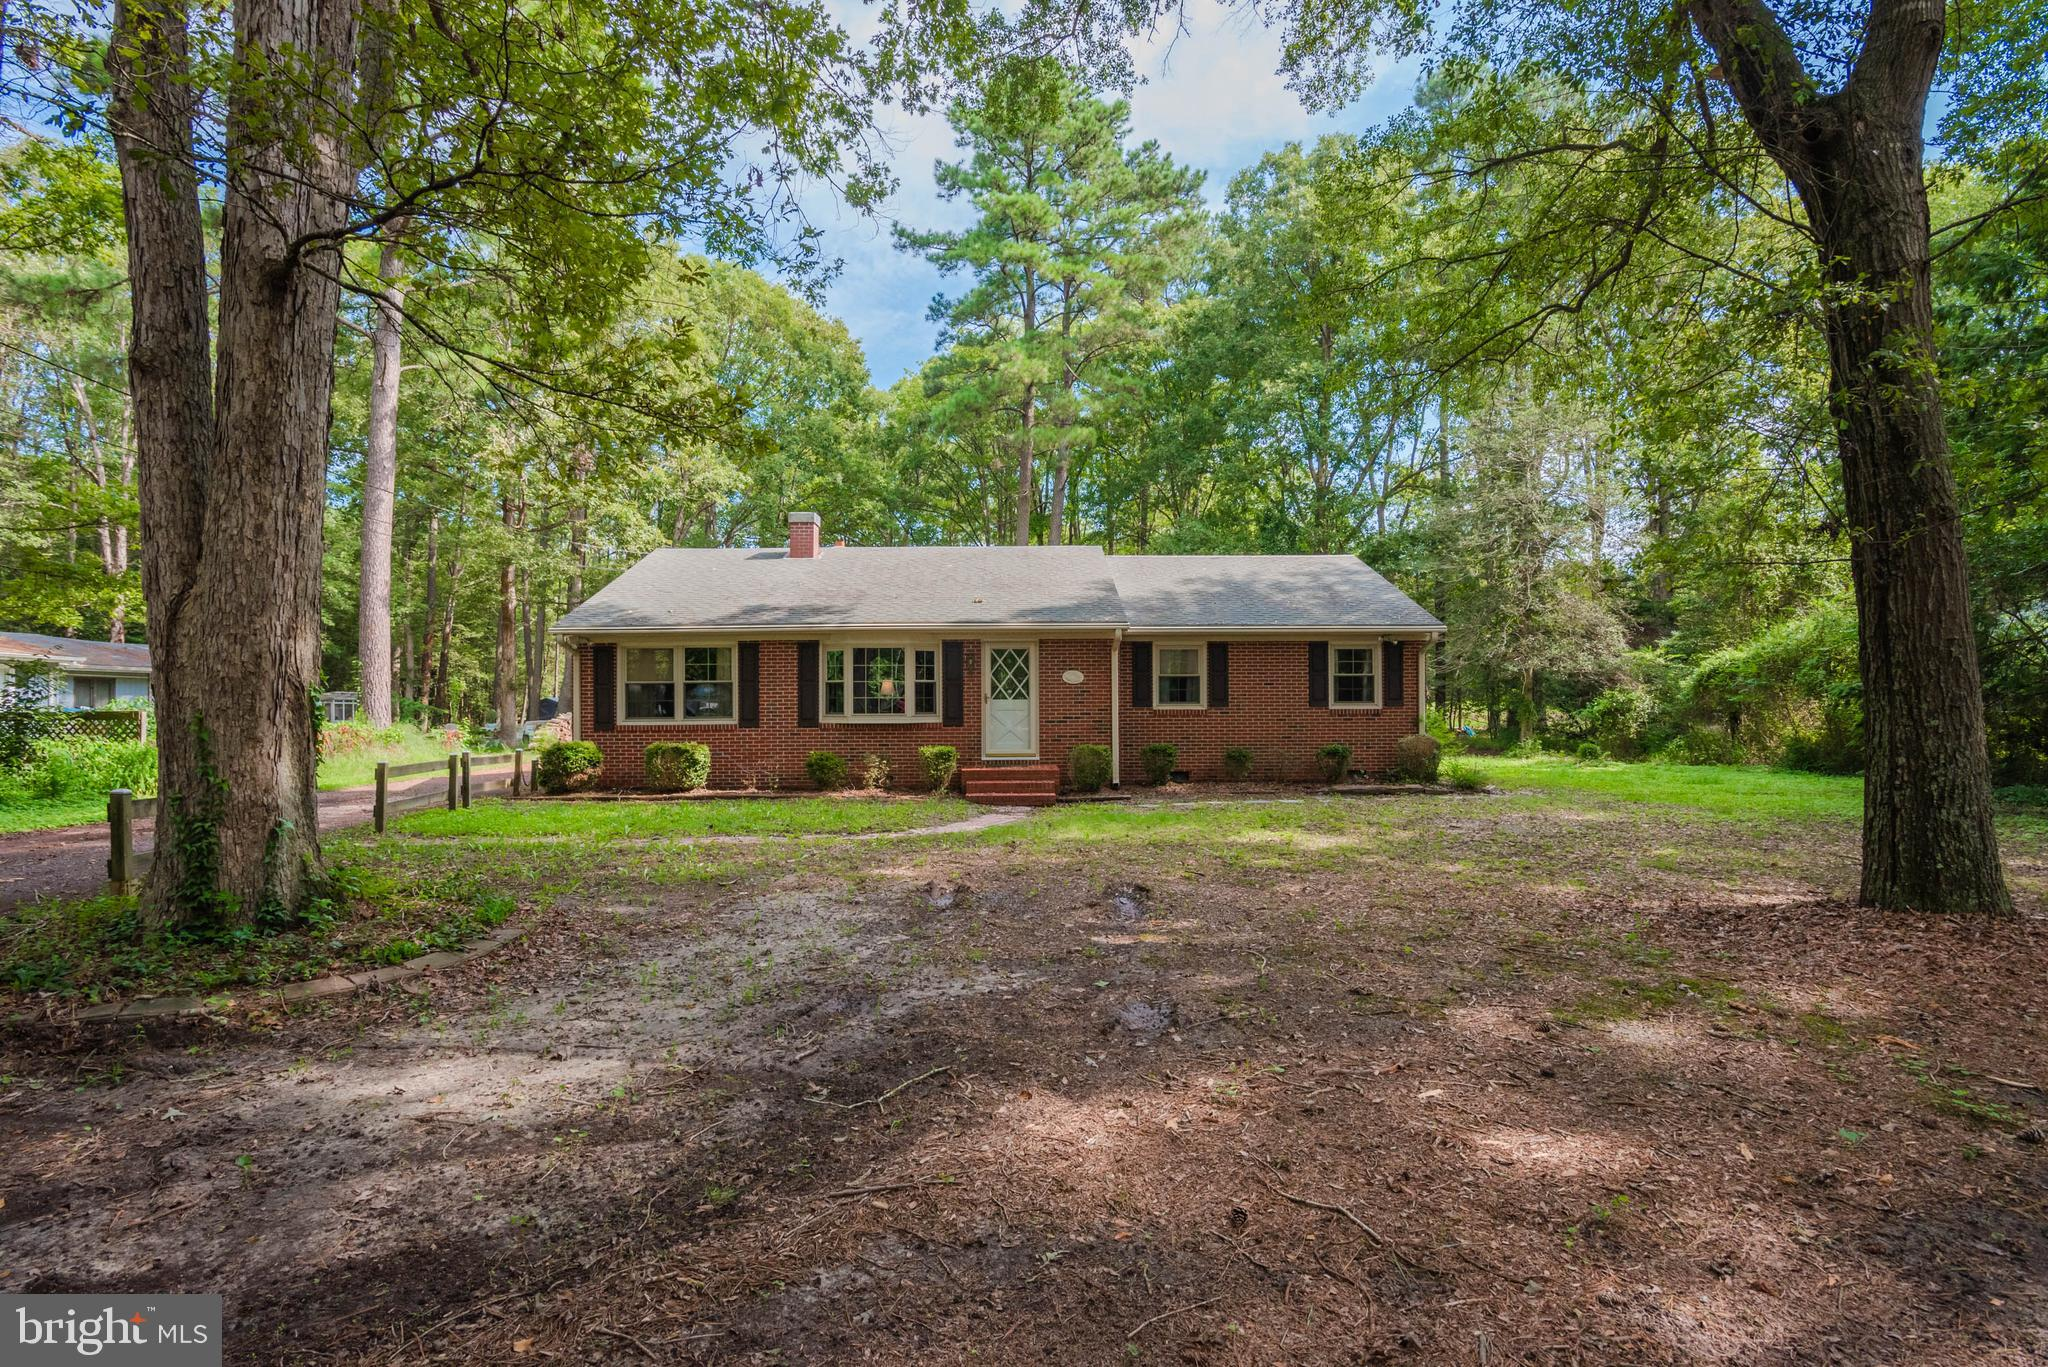 Close to town but not in the fray. This solid brick rancher is situated on 1 acre lot just east of N